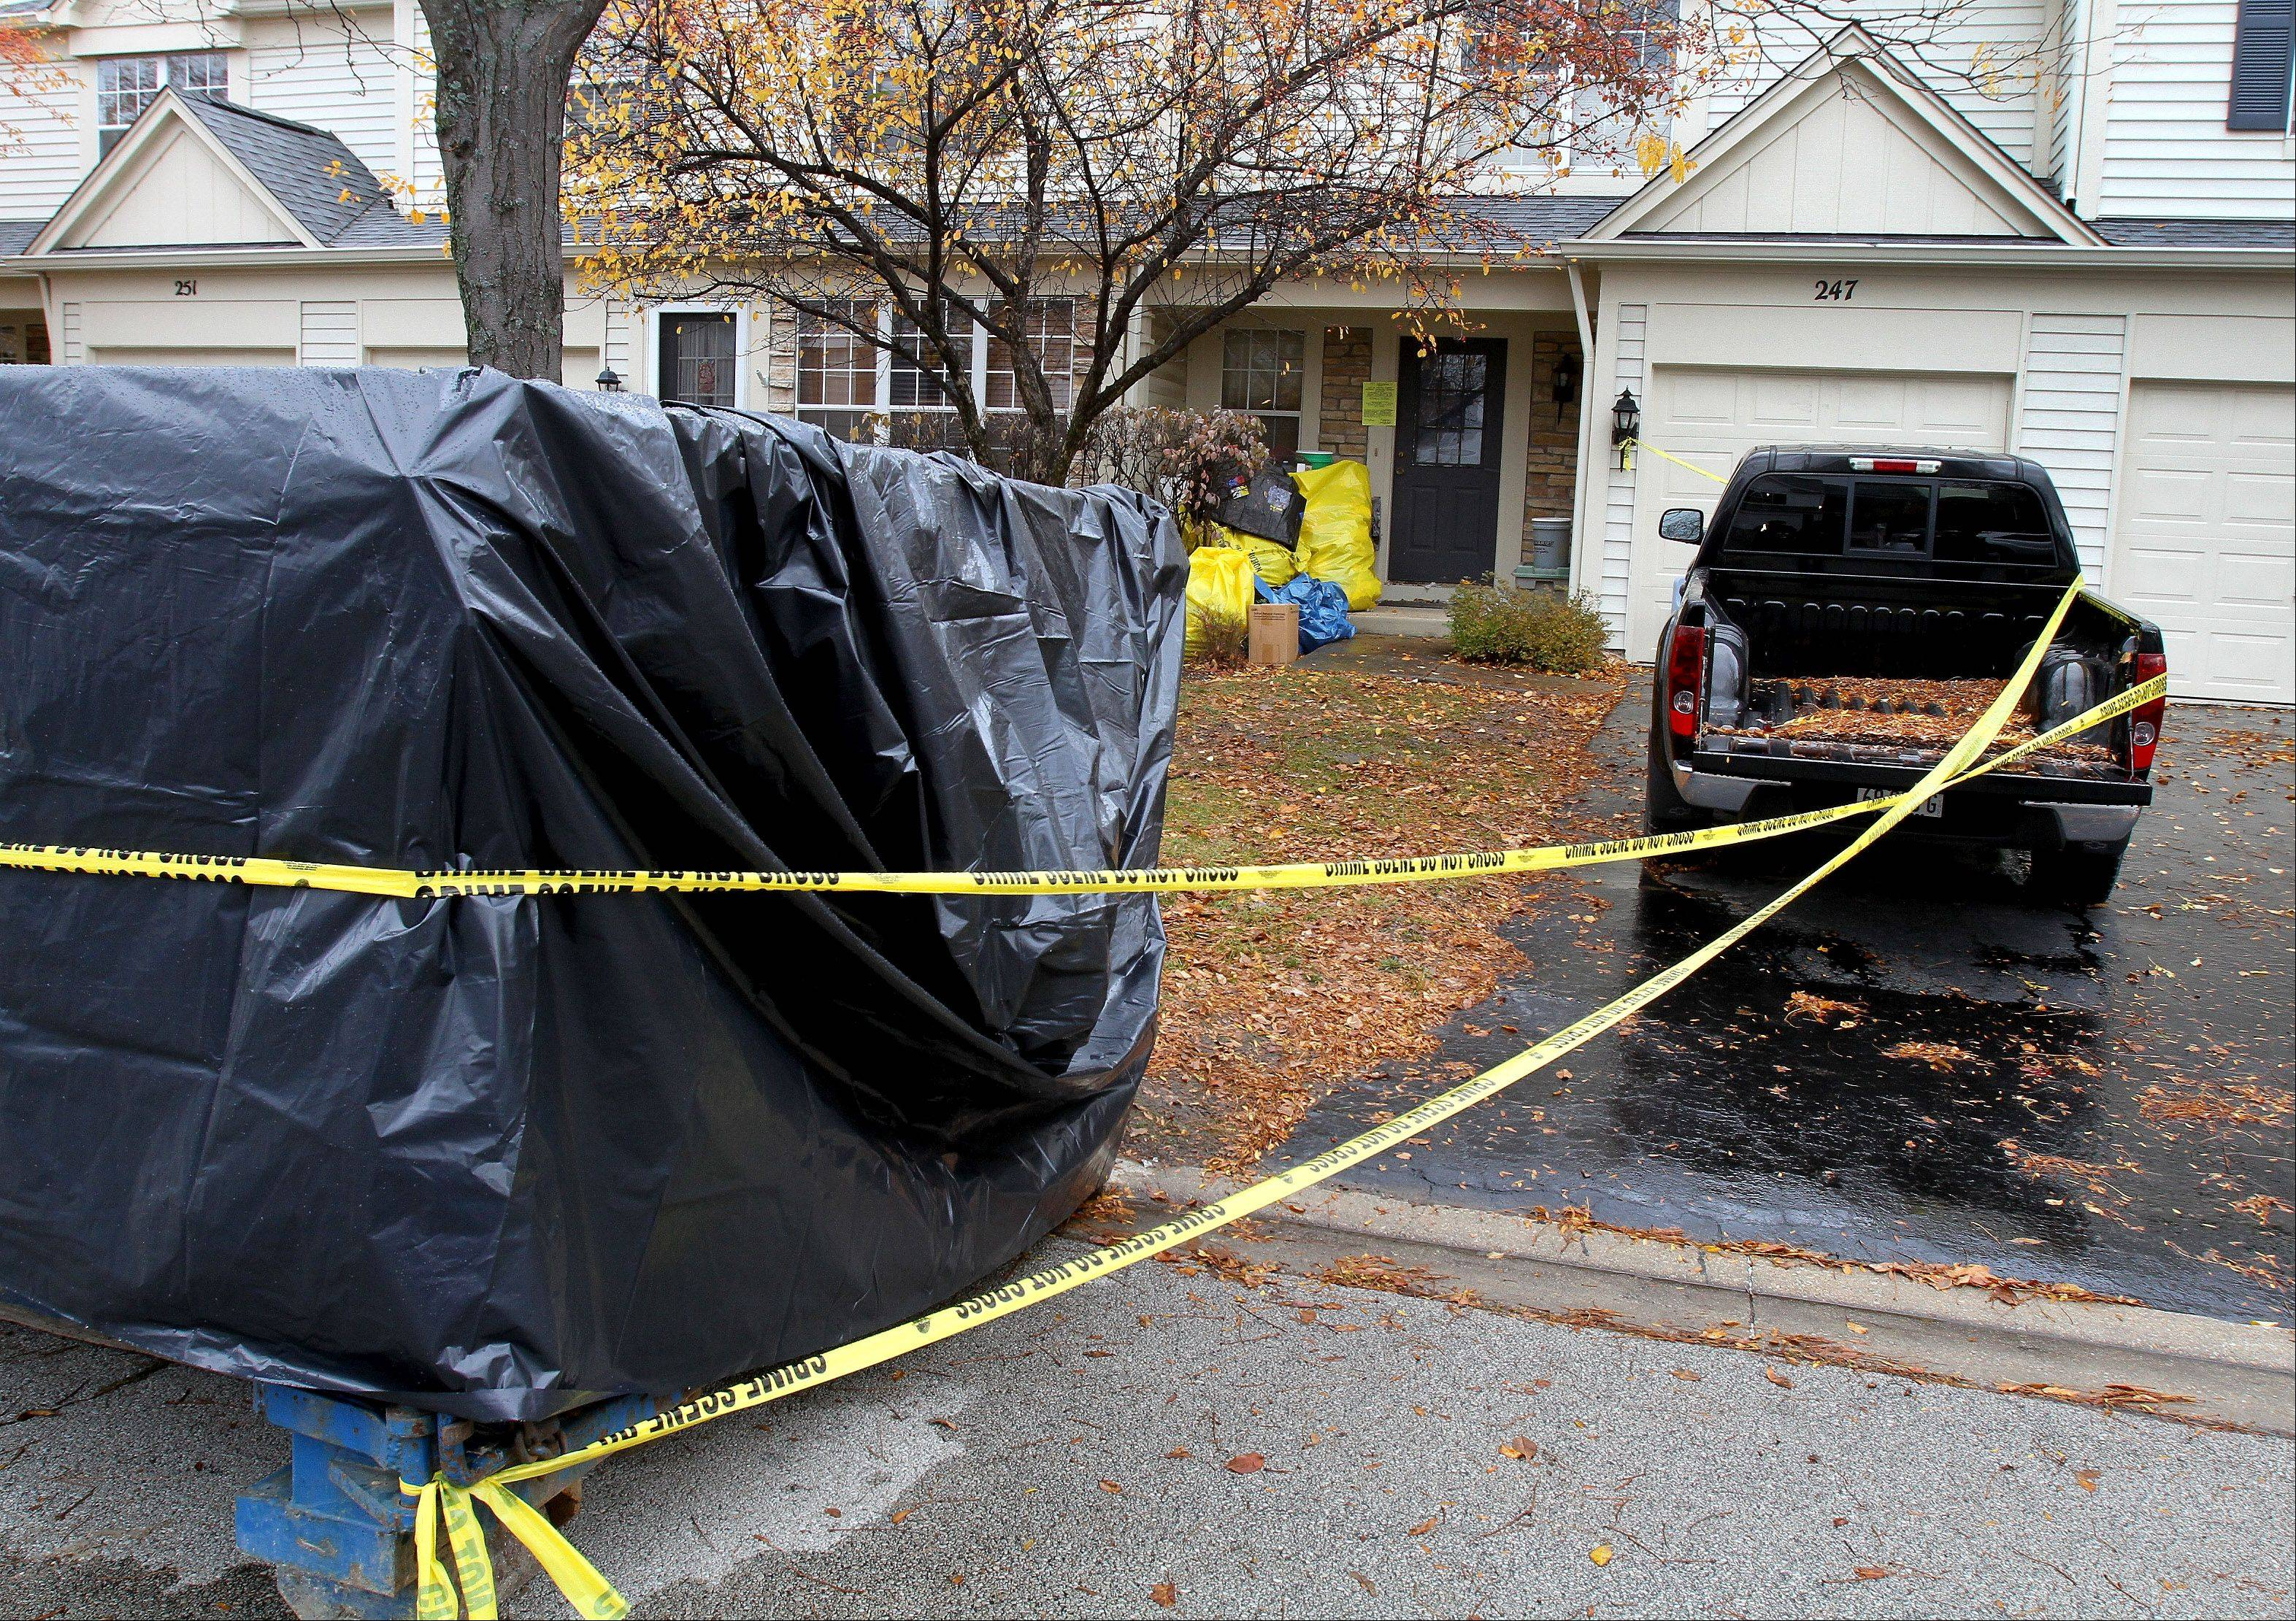 Aurora police, fire and animal control officials found dozens of birds, both dead and alive, and mounds of trash on Friday at a home on the 200 block of Shadybrook Lane in Aurora.